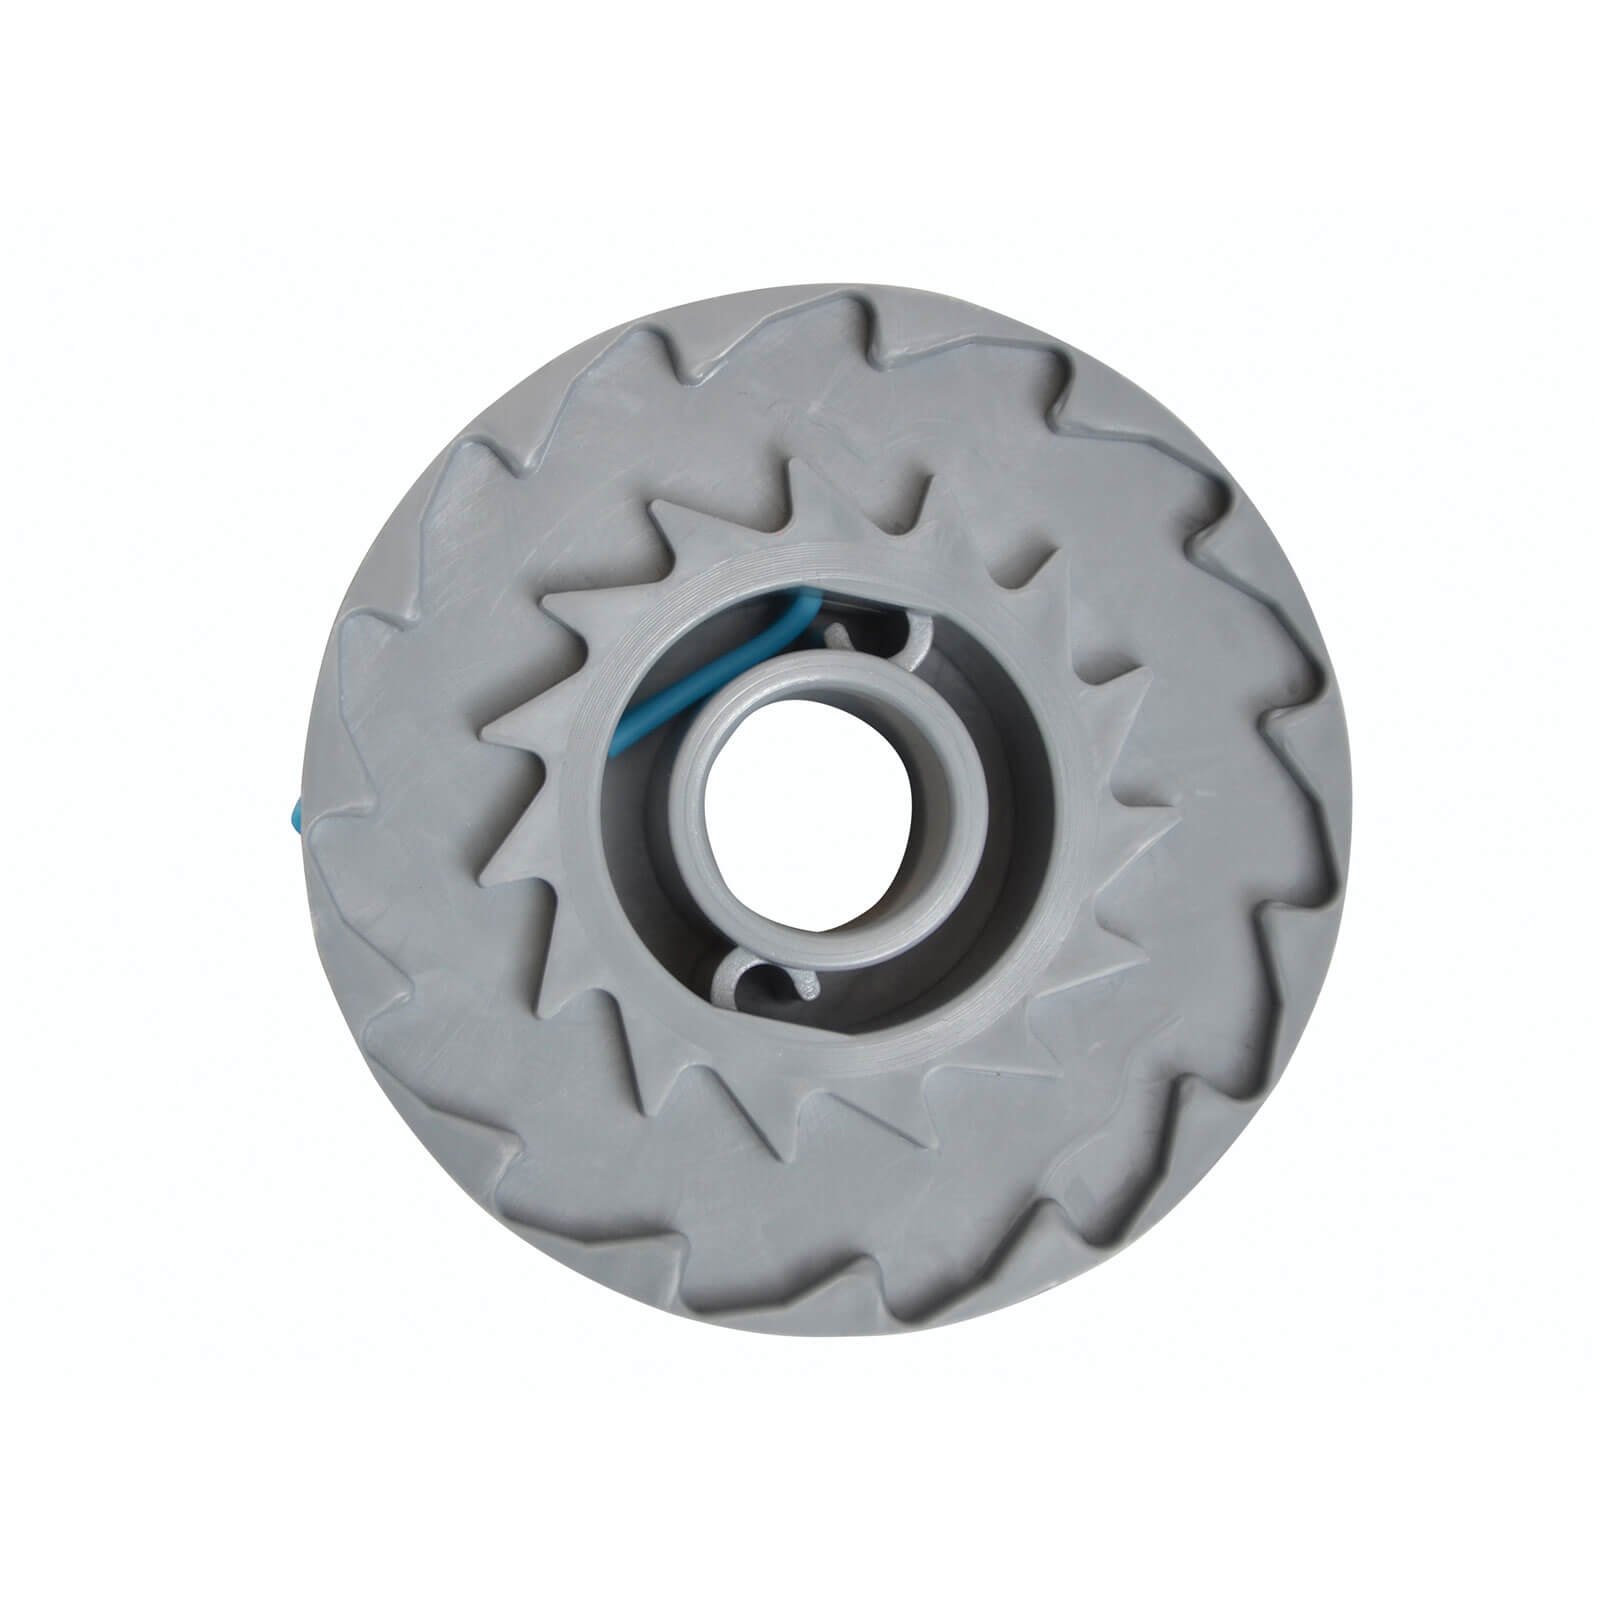 ALM FL489 Spool /& Line With Cover for Strimmer Flymo Contour XT MET230 Power